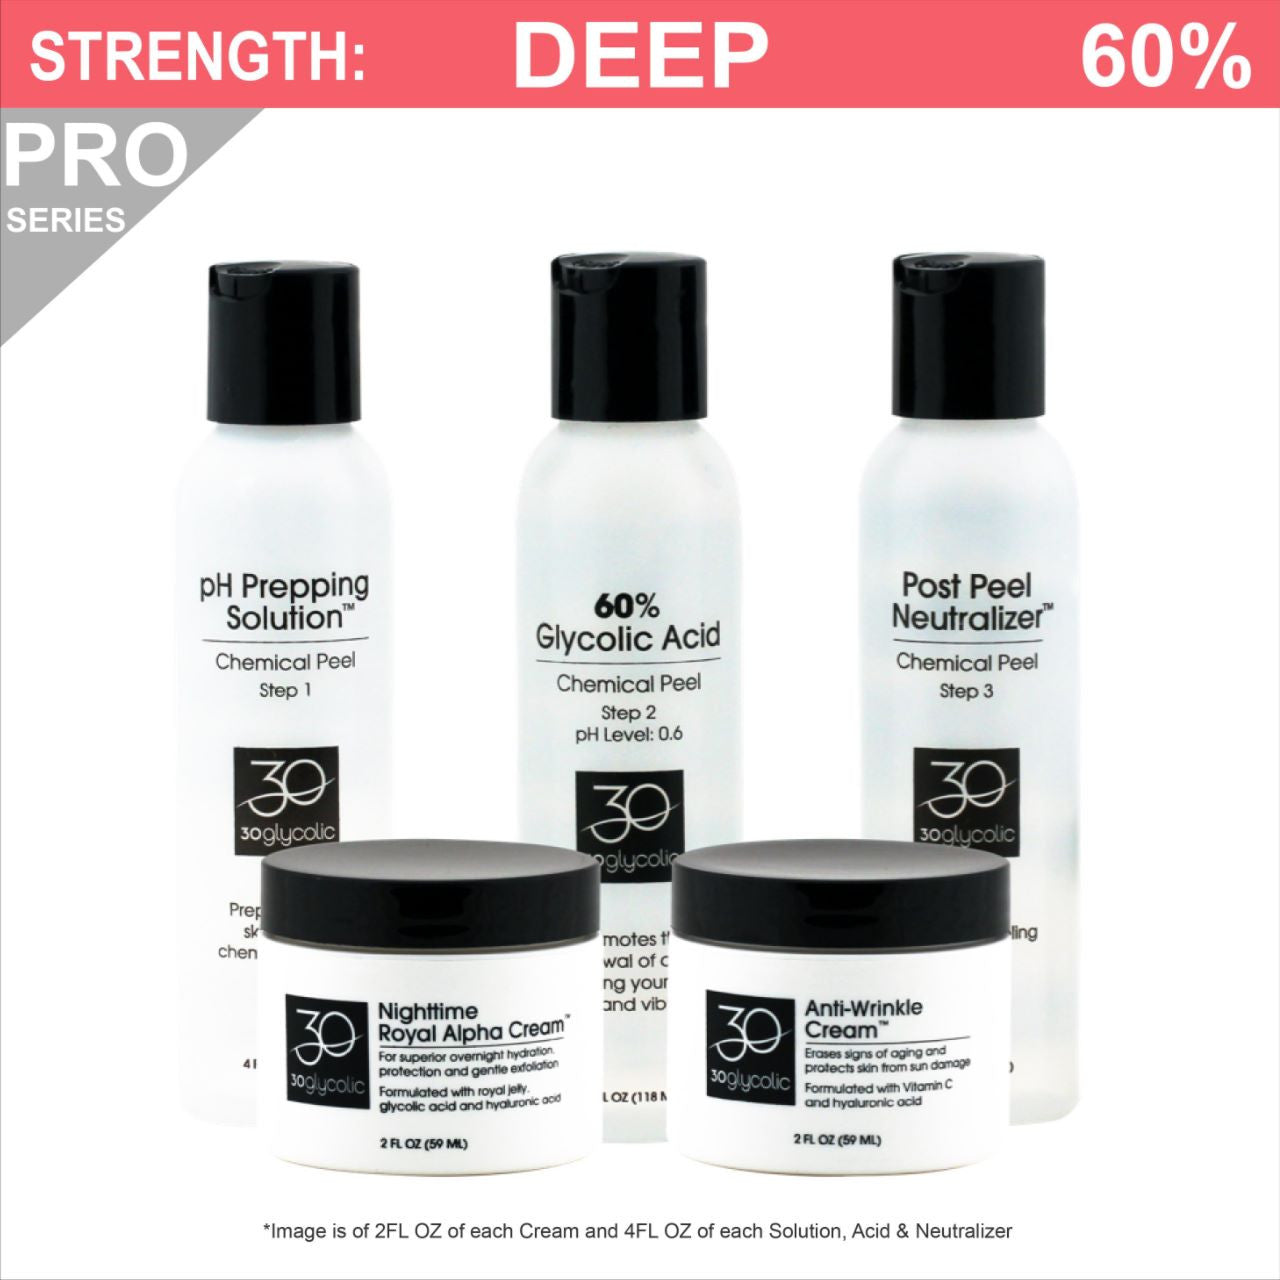 d39d83ce22f4 Pro-Series 60% Anti-Wrinkle Anti-Aging Glycolic Peel System ...